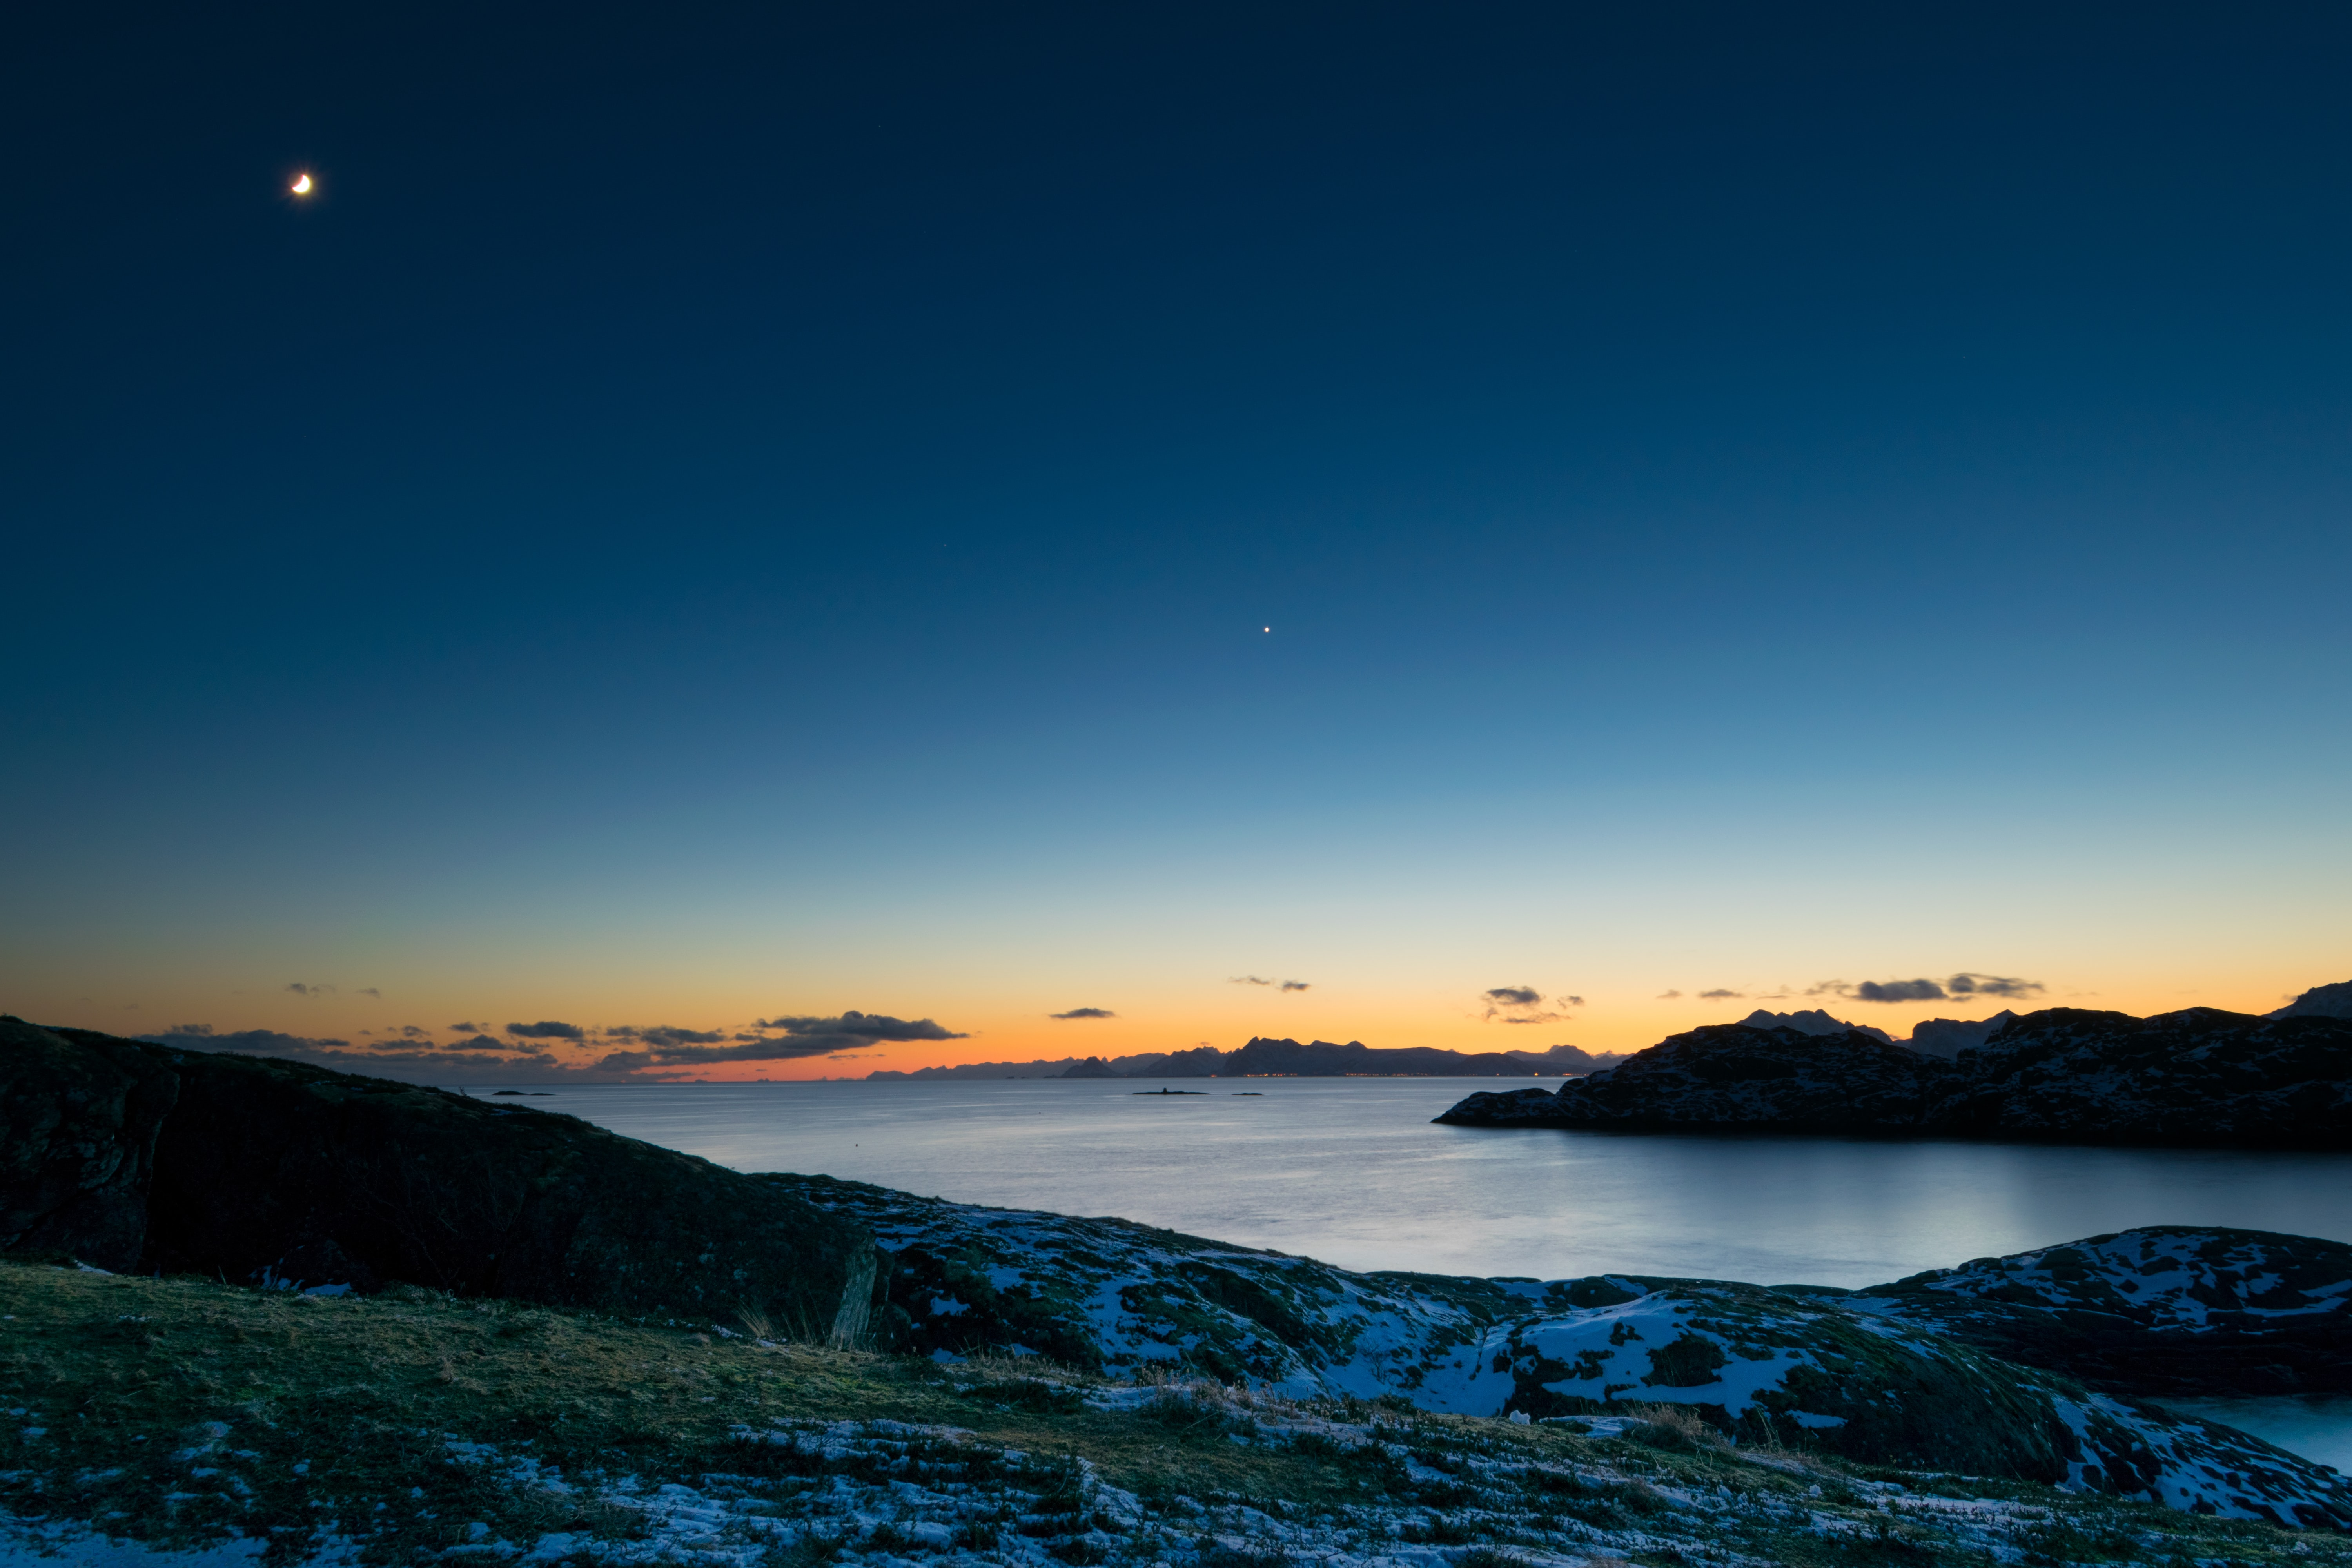 Moon rise during sunset on an inky night sky over Lofoten